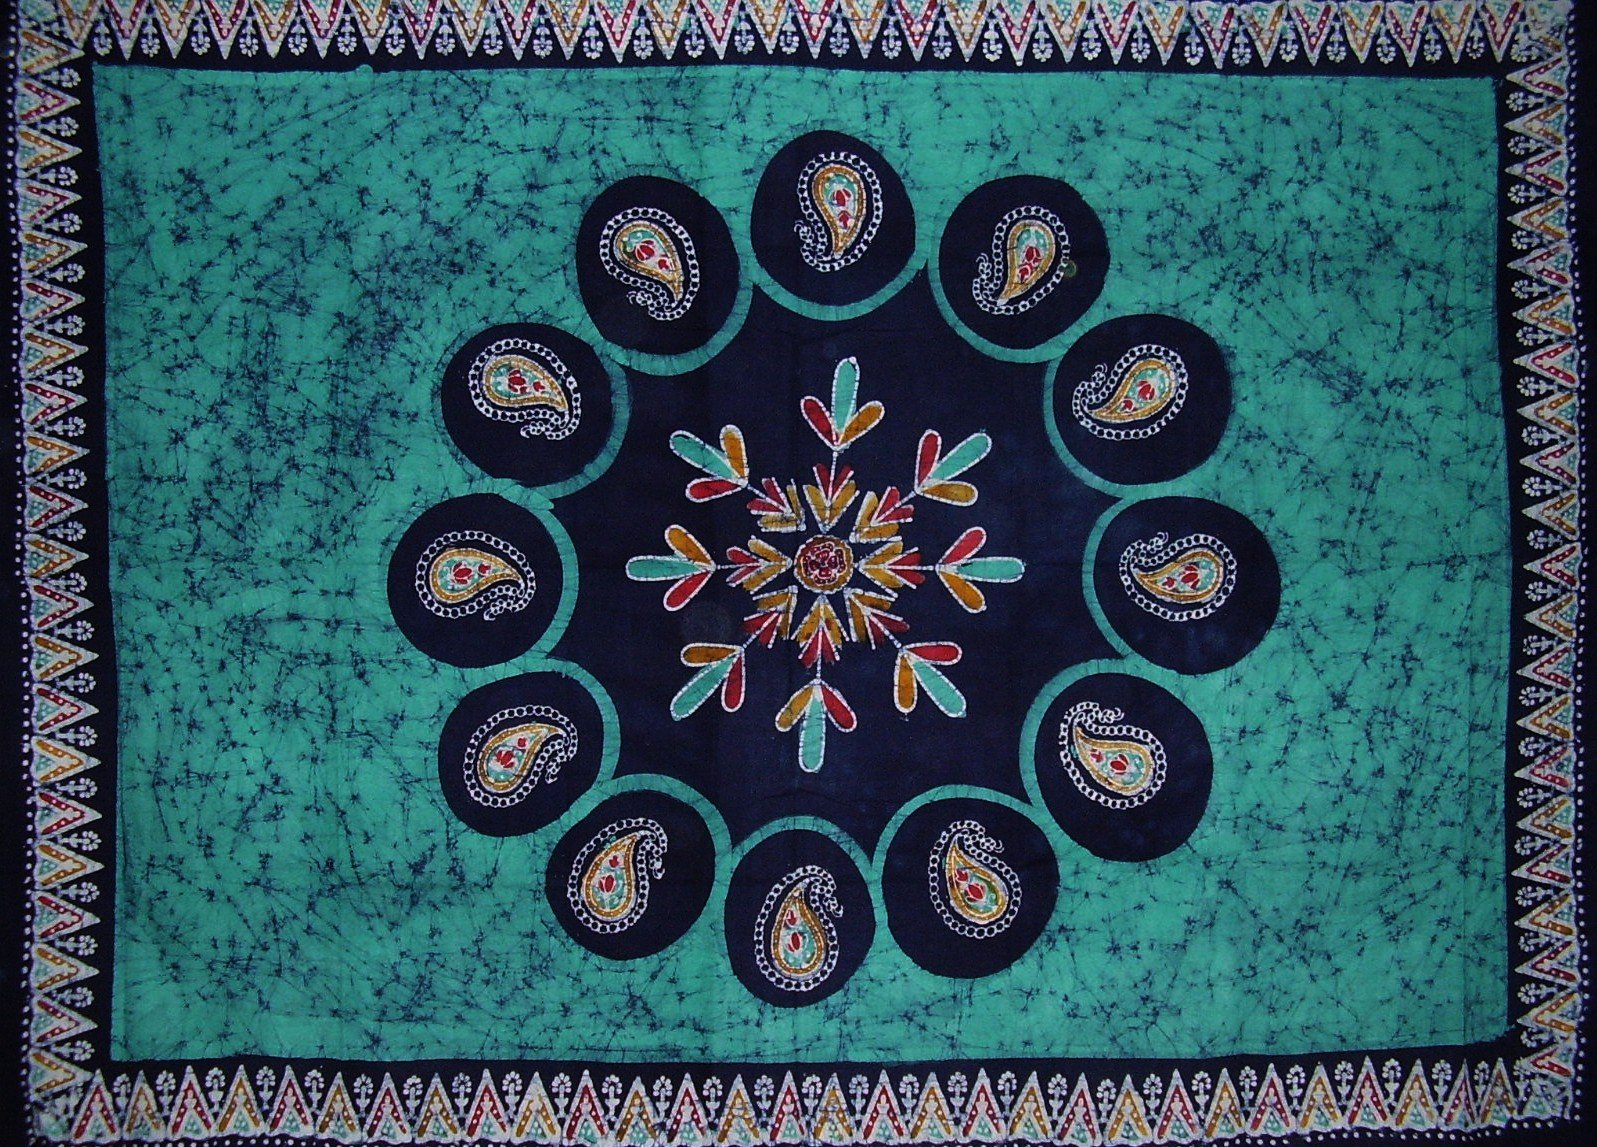 Batik Tapestry Cotton Wall Hanging or Tablecloth 90'' x 60'' Green